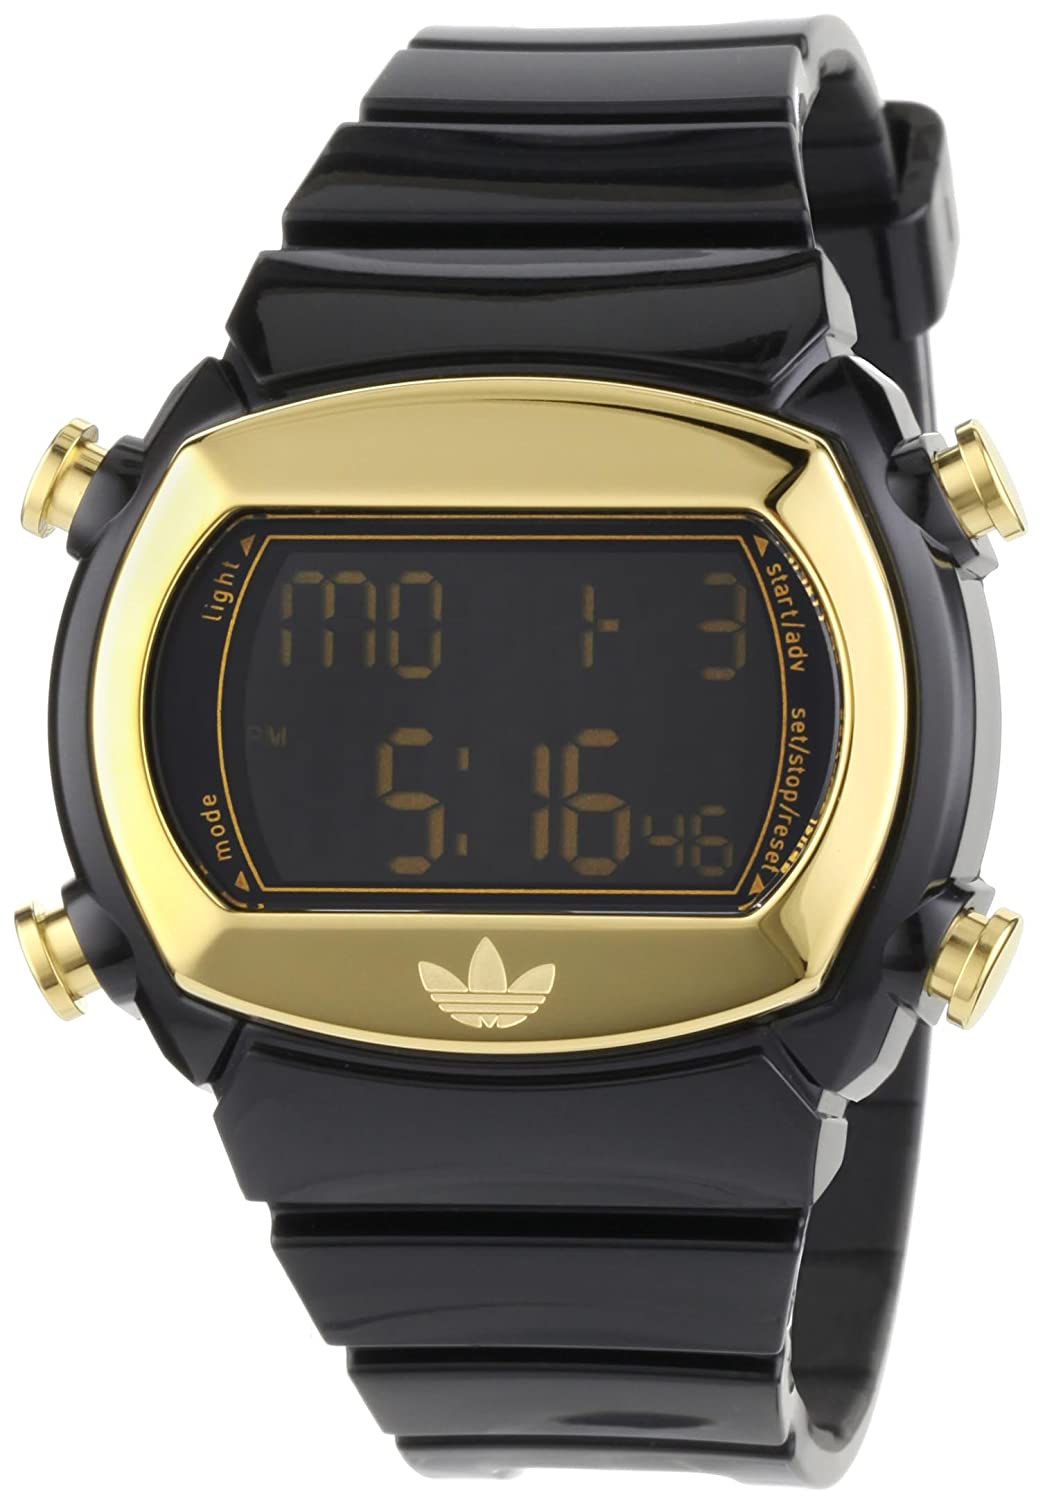 Amazon.com: Adidas Mens ADH1572 Black Candy Digital Watch: Adidas: Watches